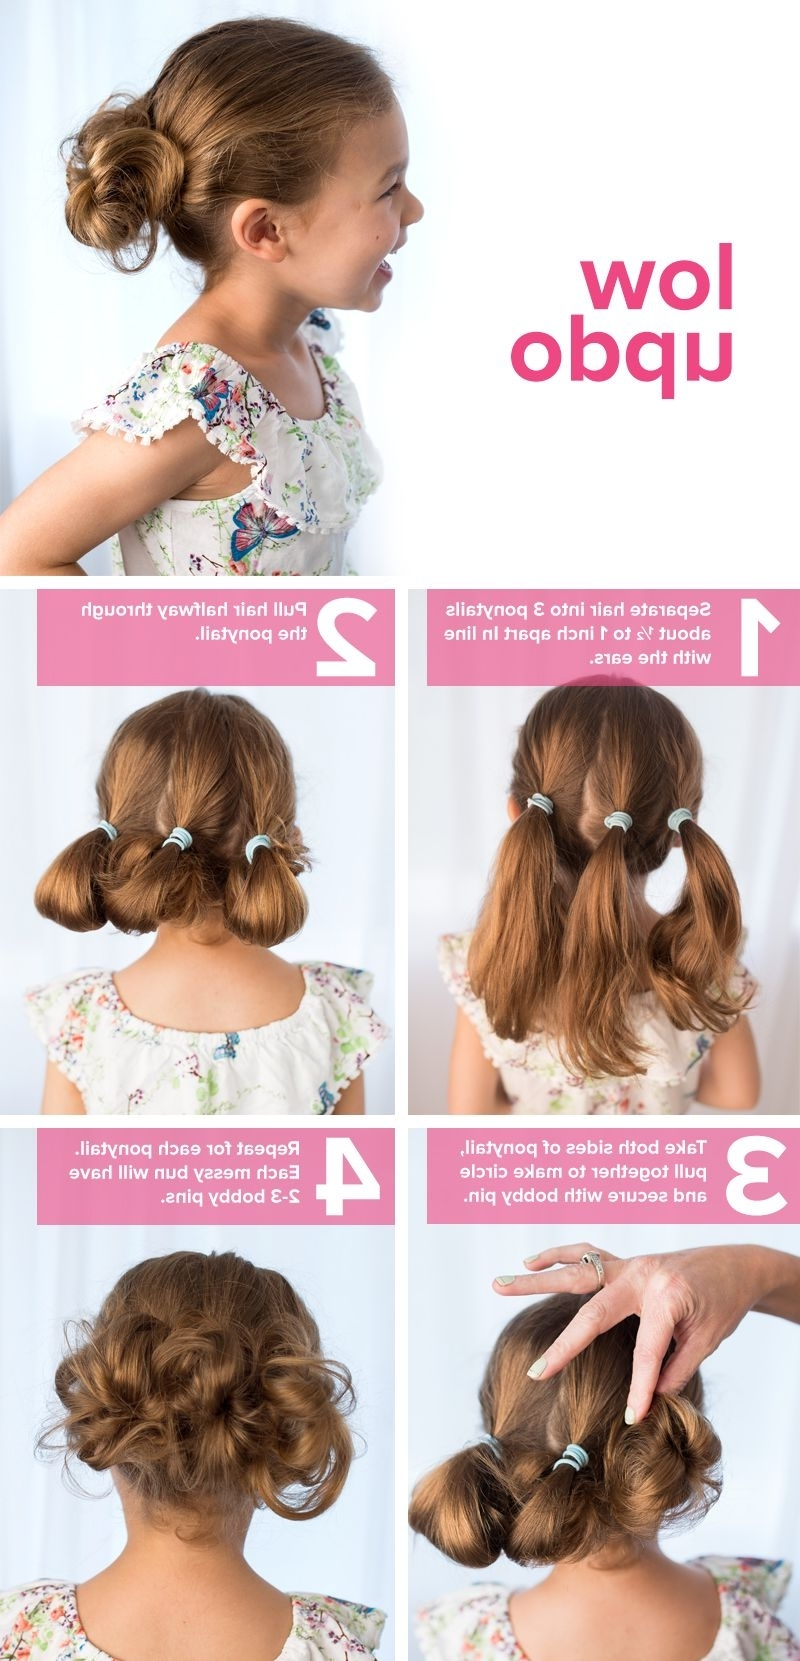 5 Fast, Easy, Cute Hairstyles For Girls | Low Updo, Updo And Kids S Inside Sporty Updo Hairstyles For Short Hair (View 2 of 15)